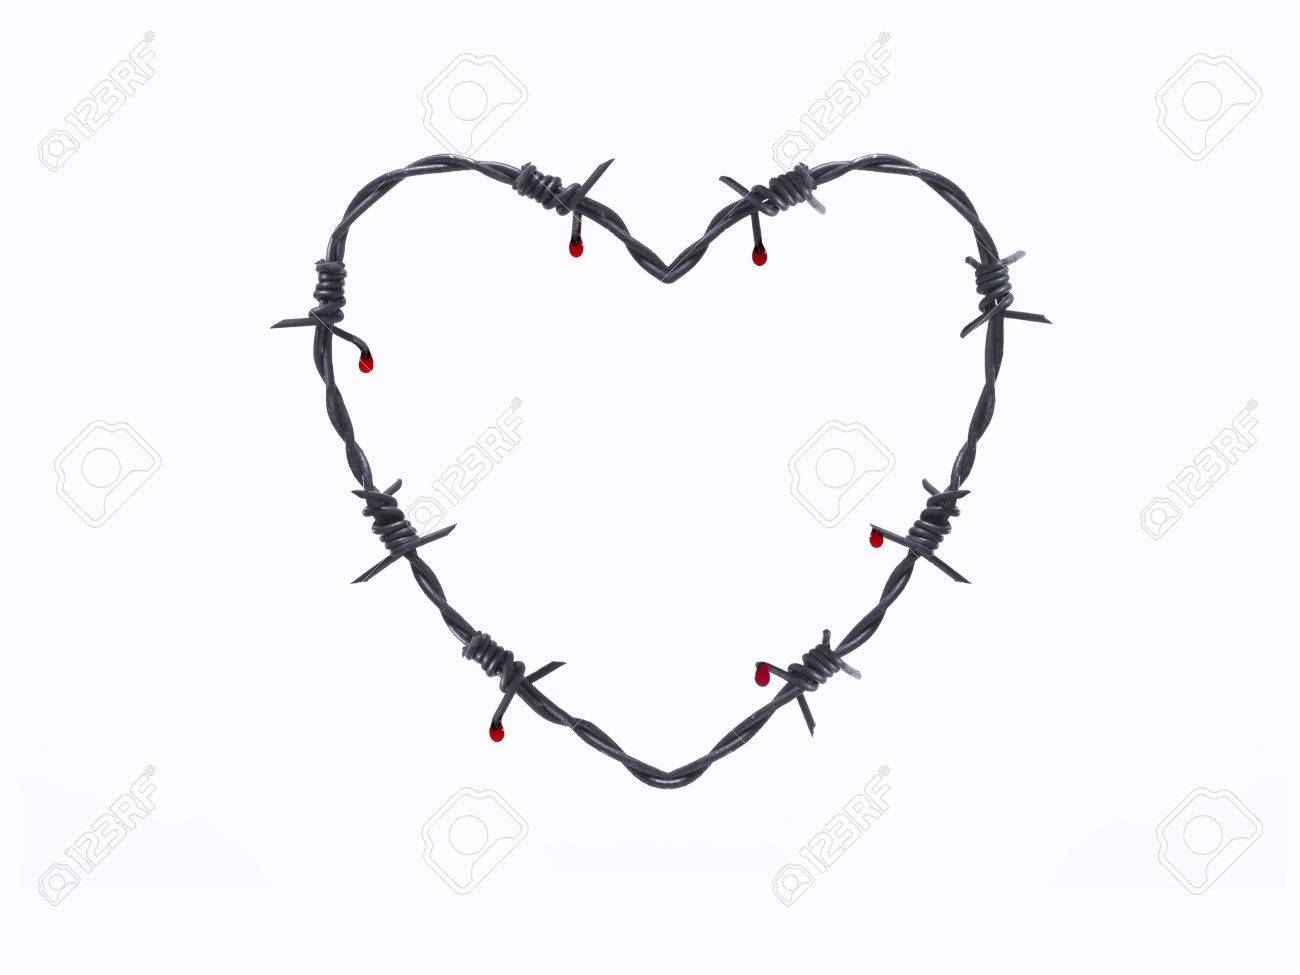 Barbed Wire Heart Clip Art Center Pad2pad Custom Printed Circuit Board Manufacturer Mahwah Nj In Shape Stock Photo Picture And Royalty Free Rh 123rf Com Drawings Graphics